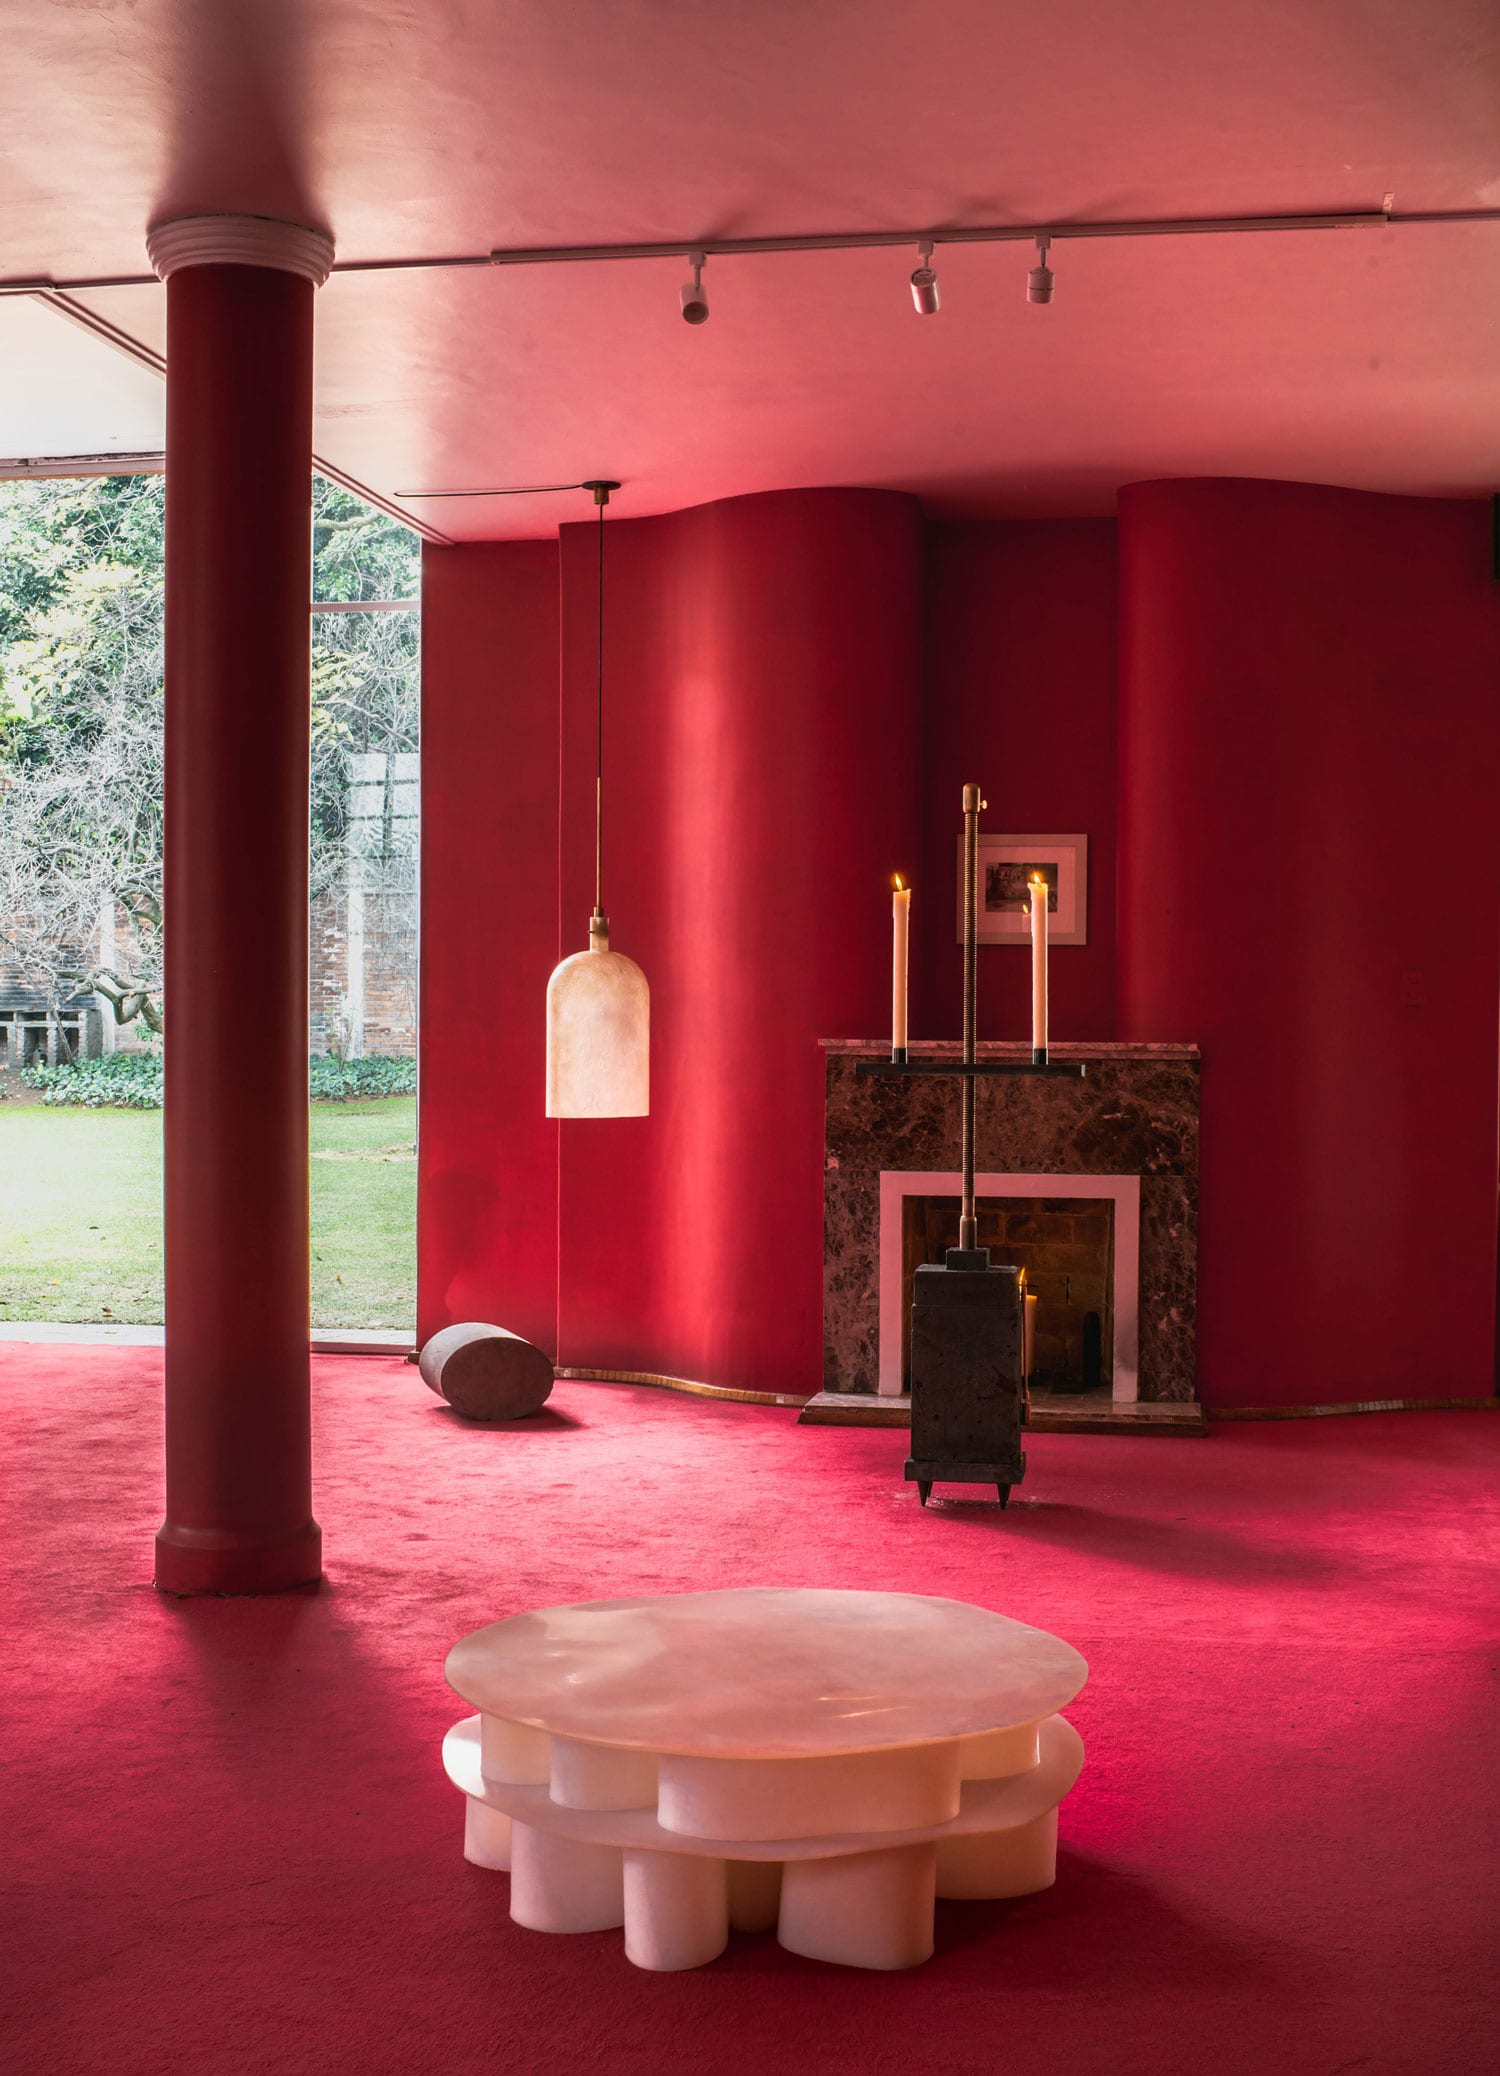 Masa Design Gallery Launches Inside An Abandoned 1970s Mansion in Mexico City | Yellowtrace